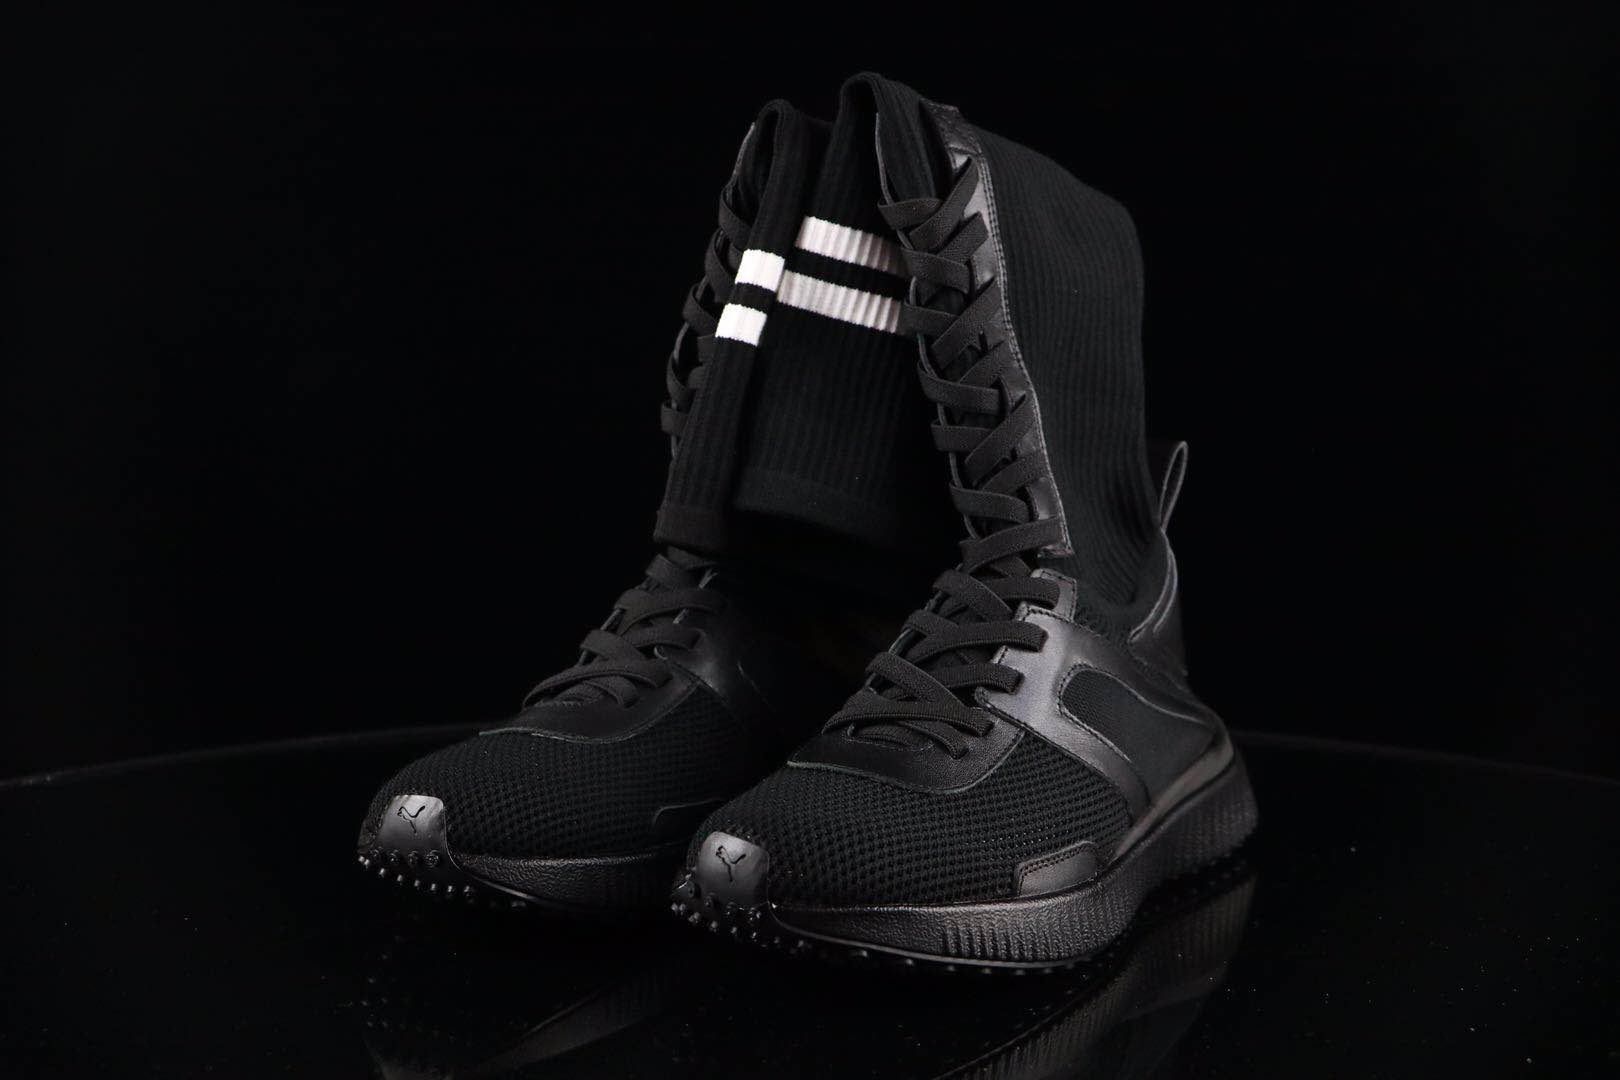 dcdcef1f1bf2 Detail Feedback Questions about PUMA Women s Fenty x Trainer Hi ...